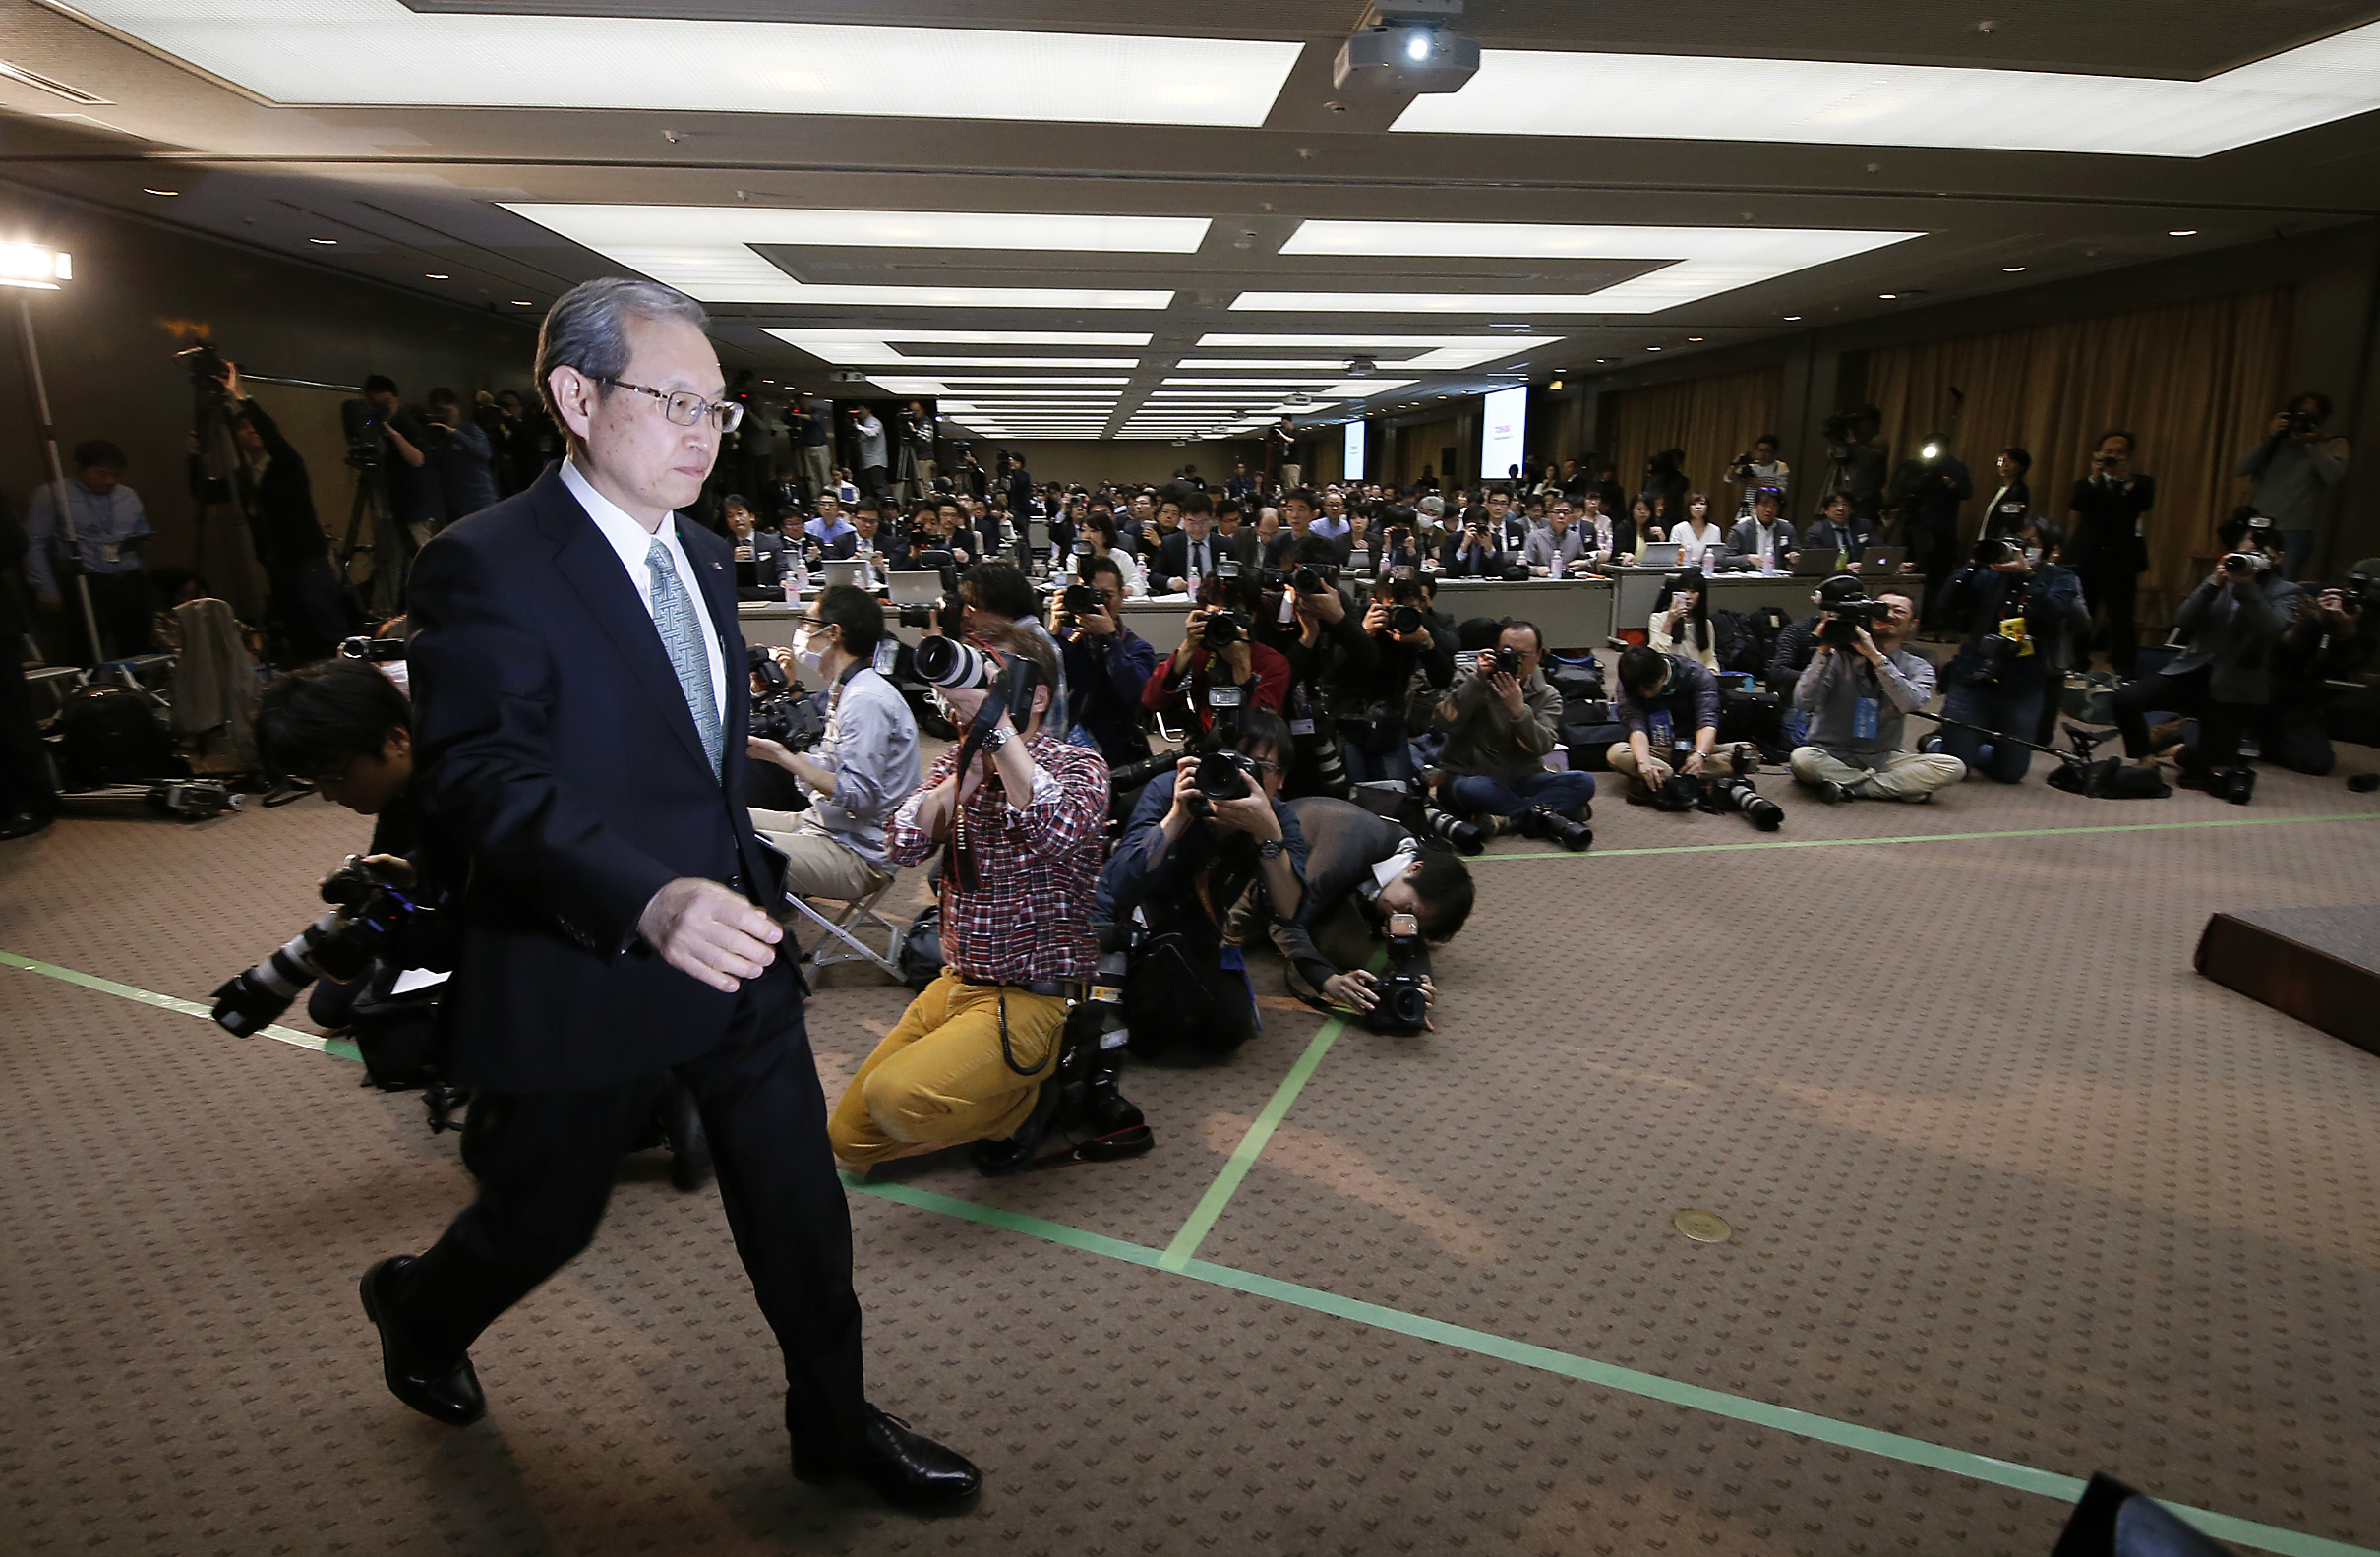 Toshiba Corp. President Satoshi Tsunakawa arrives for a press conference at the company's headquarters in Tokyo on Feb. 14, 2017. (AP Photo/Shizuo Kambayashi)